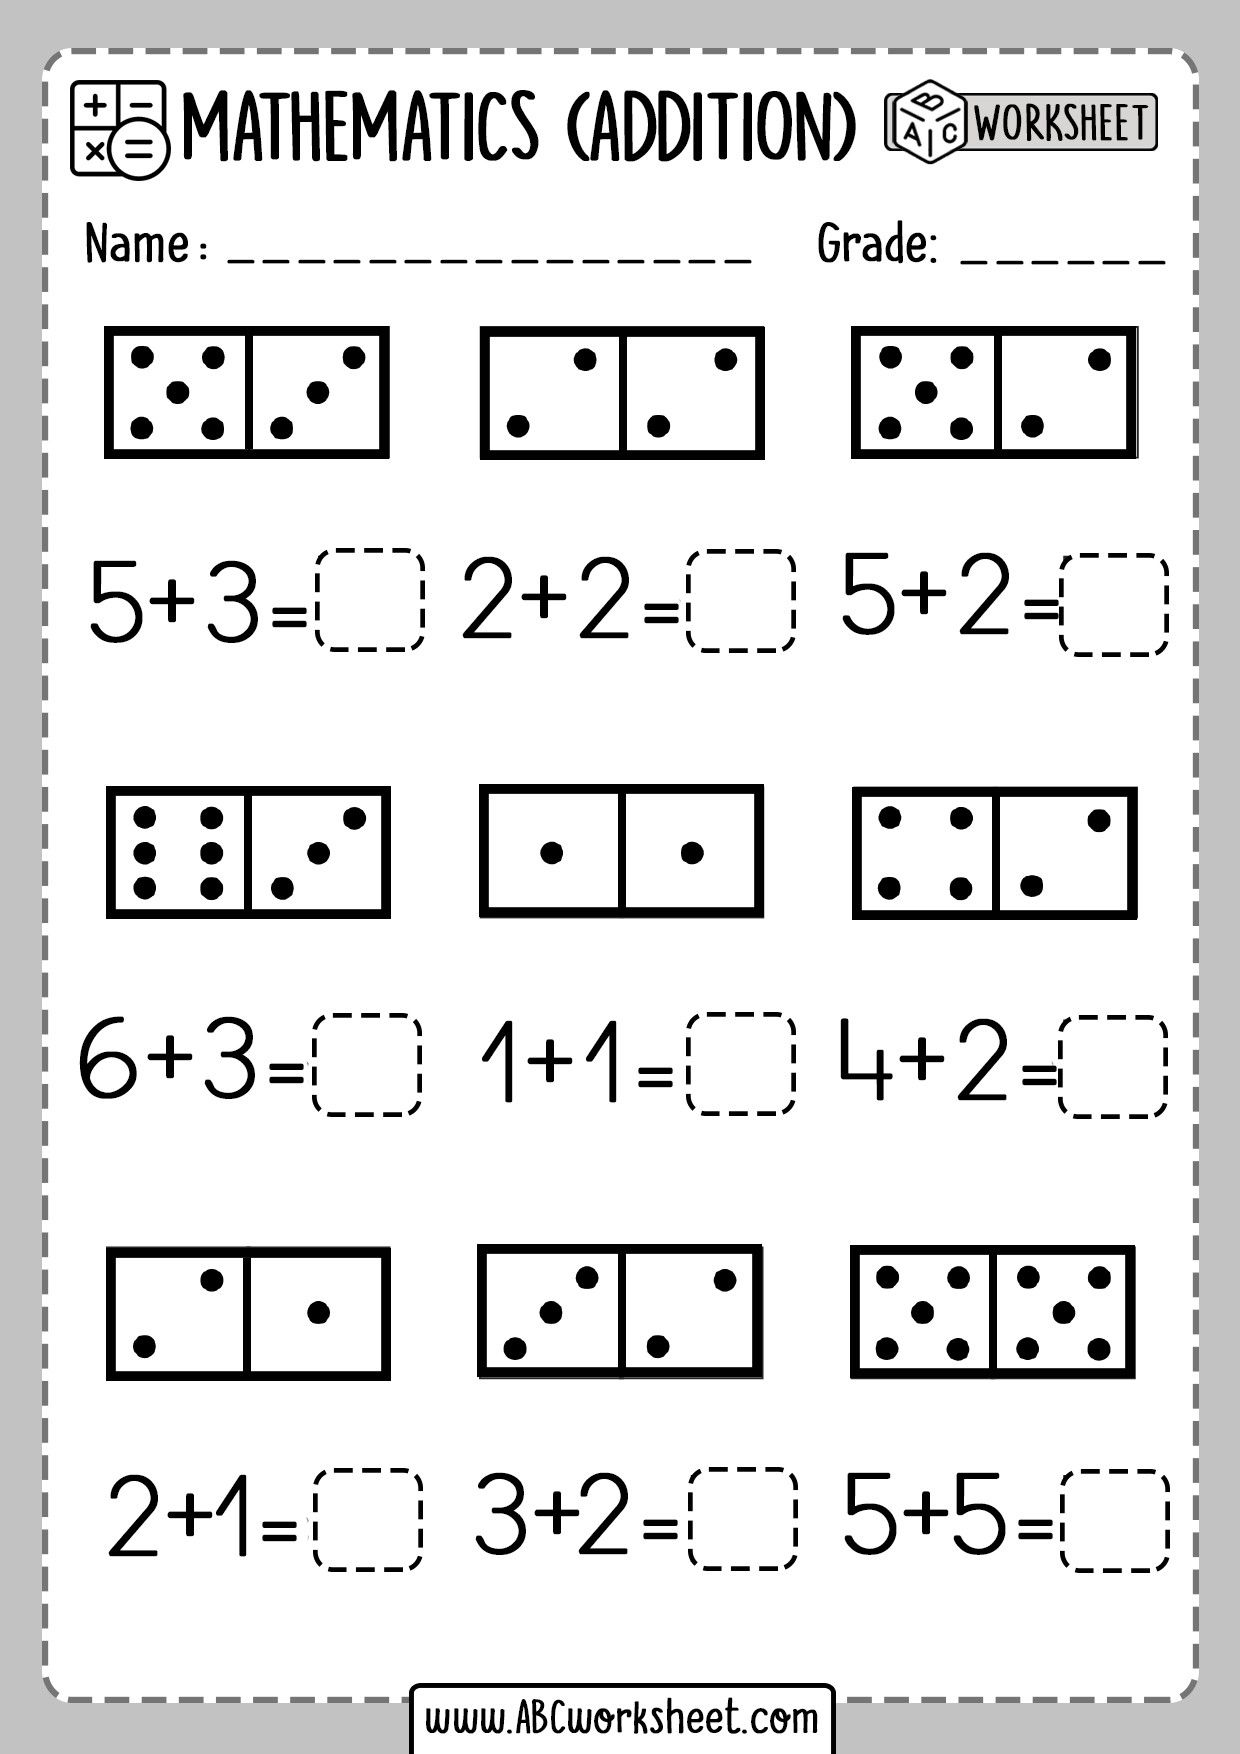 Kindergarten Math Worksheet Addition In